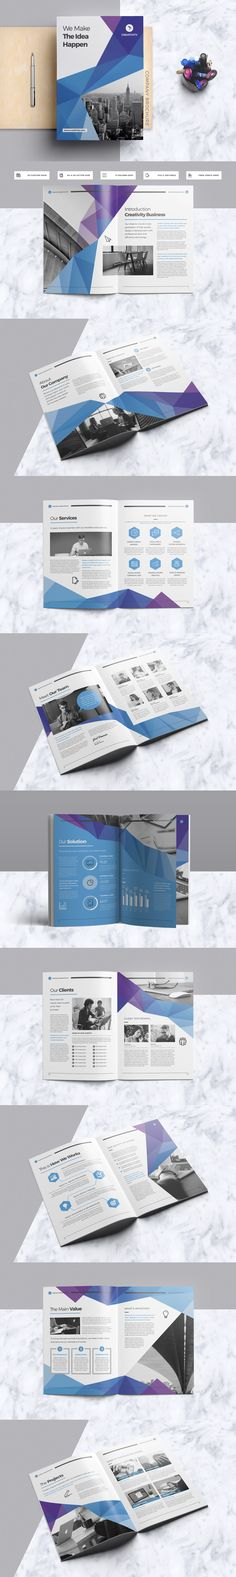 Creative & Clean Company Brochure Template With Include A4 & US Letter Size